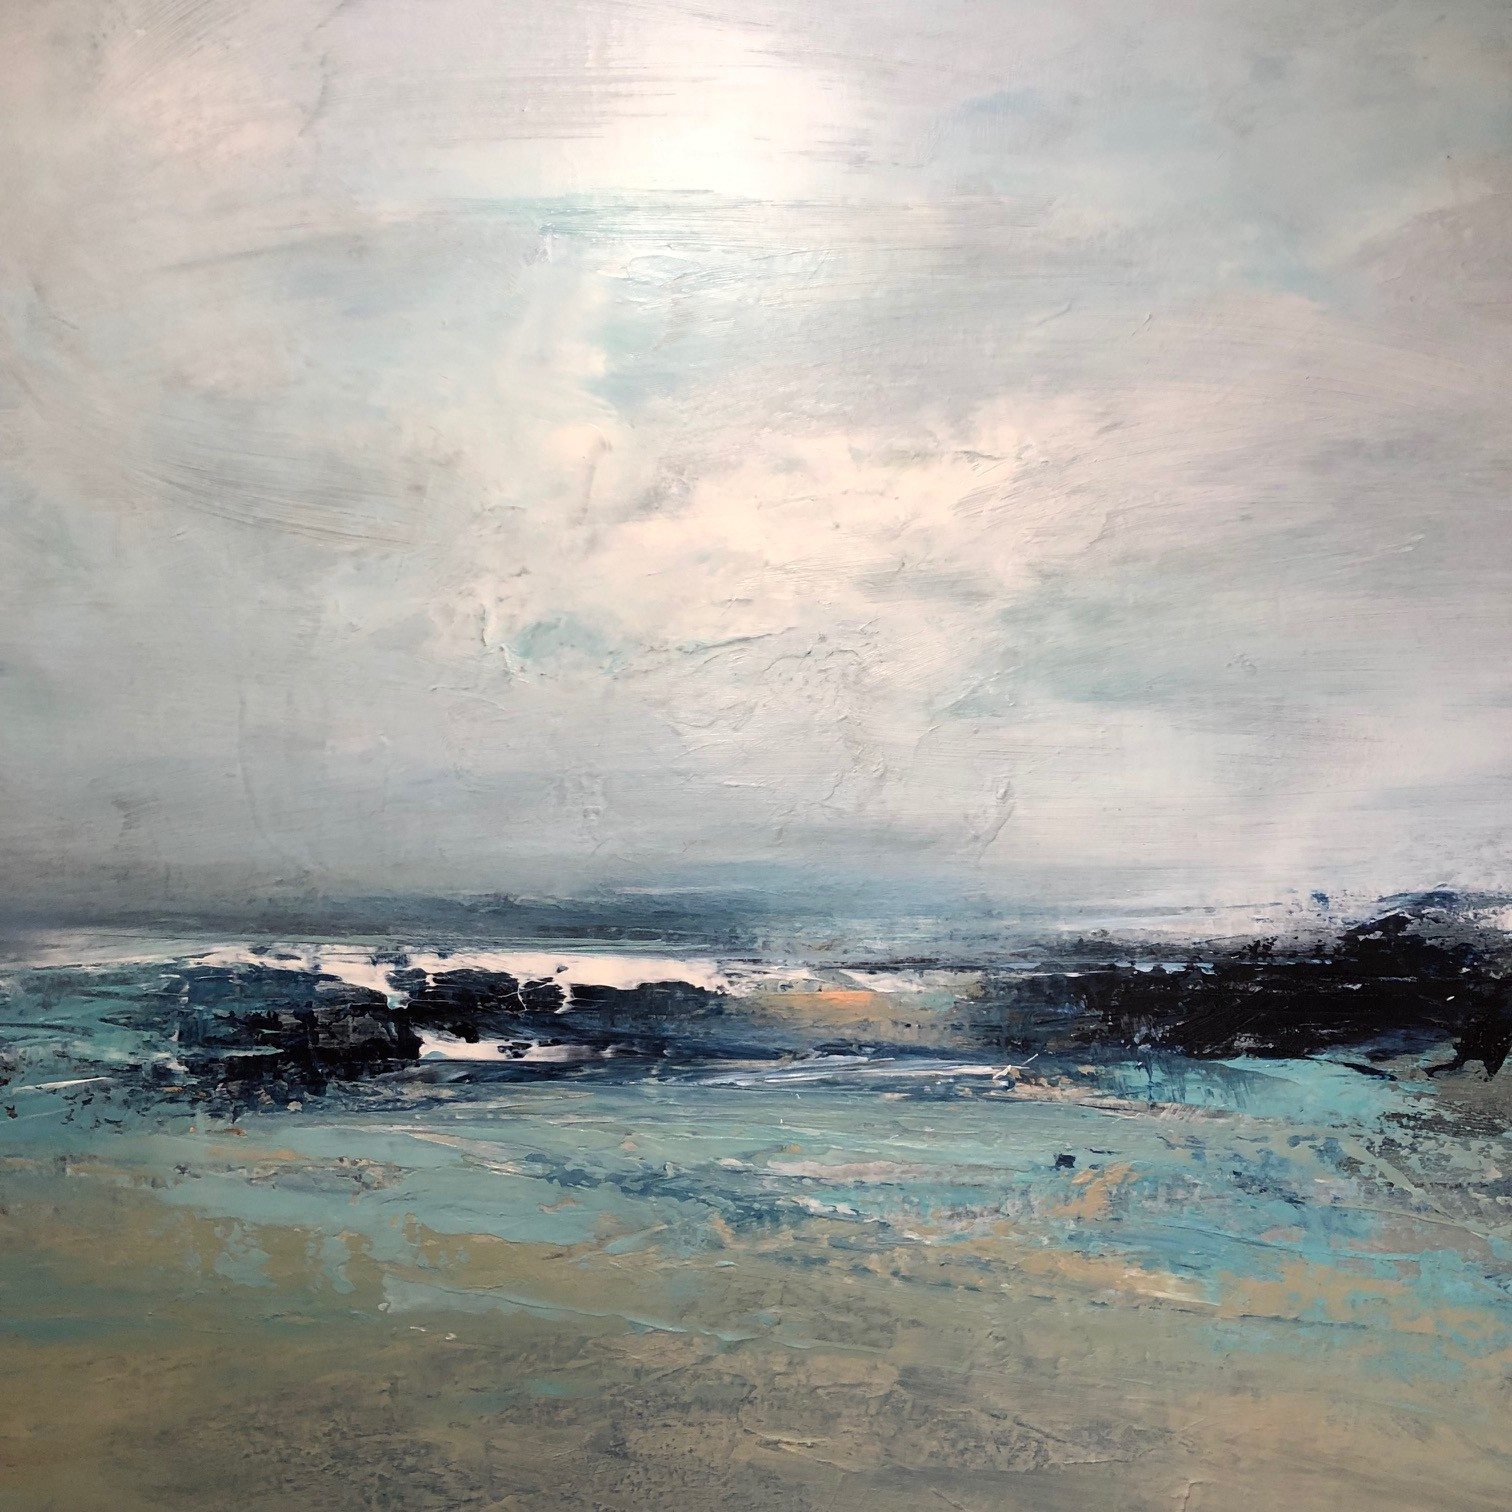 "<span class=""link fancybox-details-link""><a href=""/artists/41-erin-ward/works/6591-erin-ward-gentle-tide-2019/"">View Detail Page</a></span><div class=""artist""><strong>Erin Ward</strong></div> <div class=""title""><em>Gentle Tide</em>, 2019</div> <div class=""medium"">Acrylic on canvas</div> <div class=""dimensions"">h. 92 cm x w. 92 cm </div><div class=""price"">£1,790.00</div><div class=""copyright_line"">Ownart: £179 x 10 Months, 0% APR</div>"